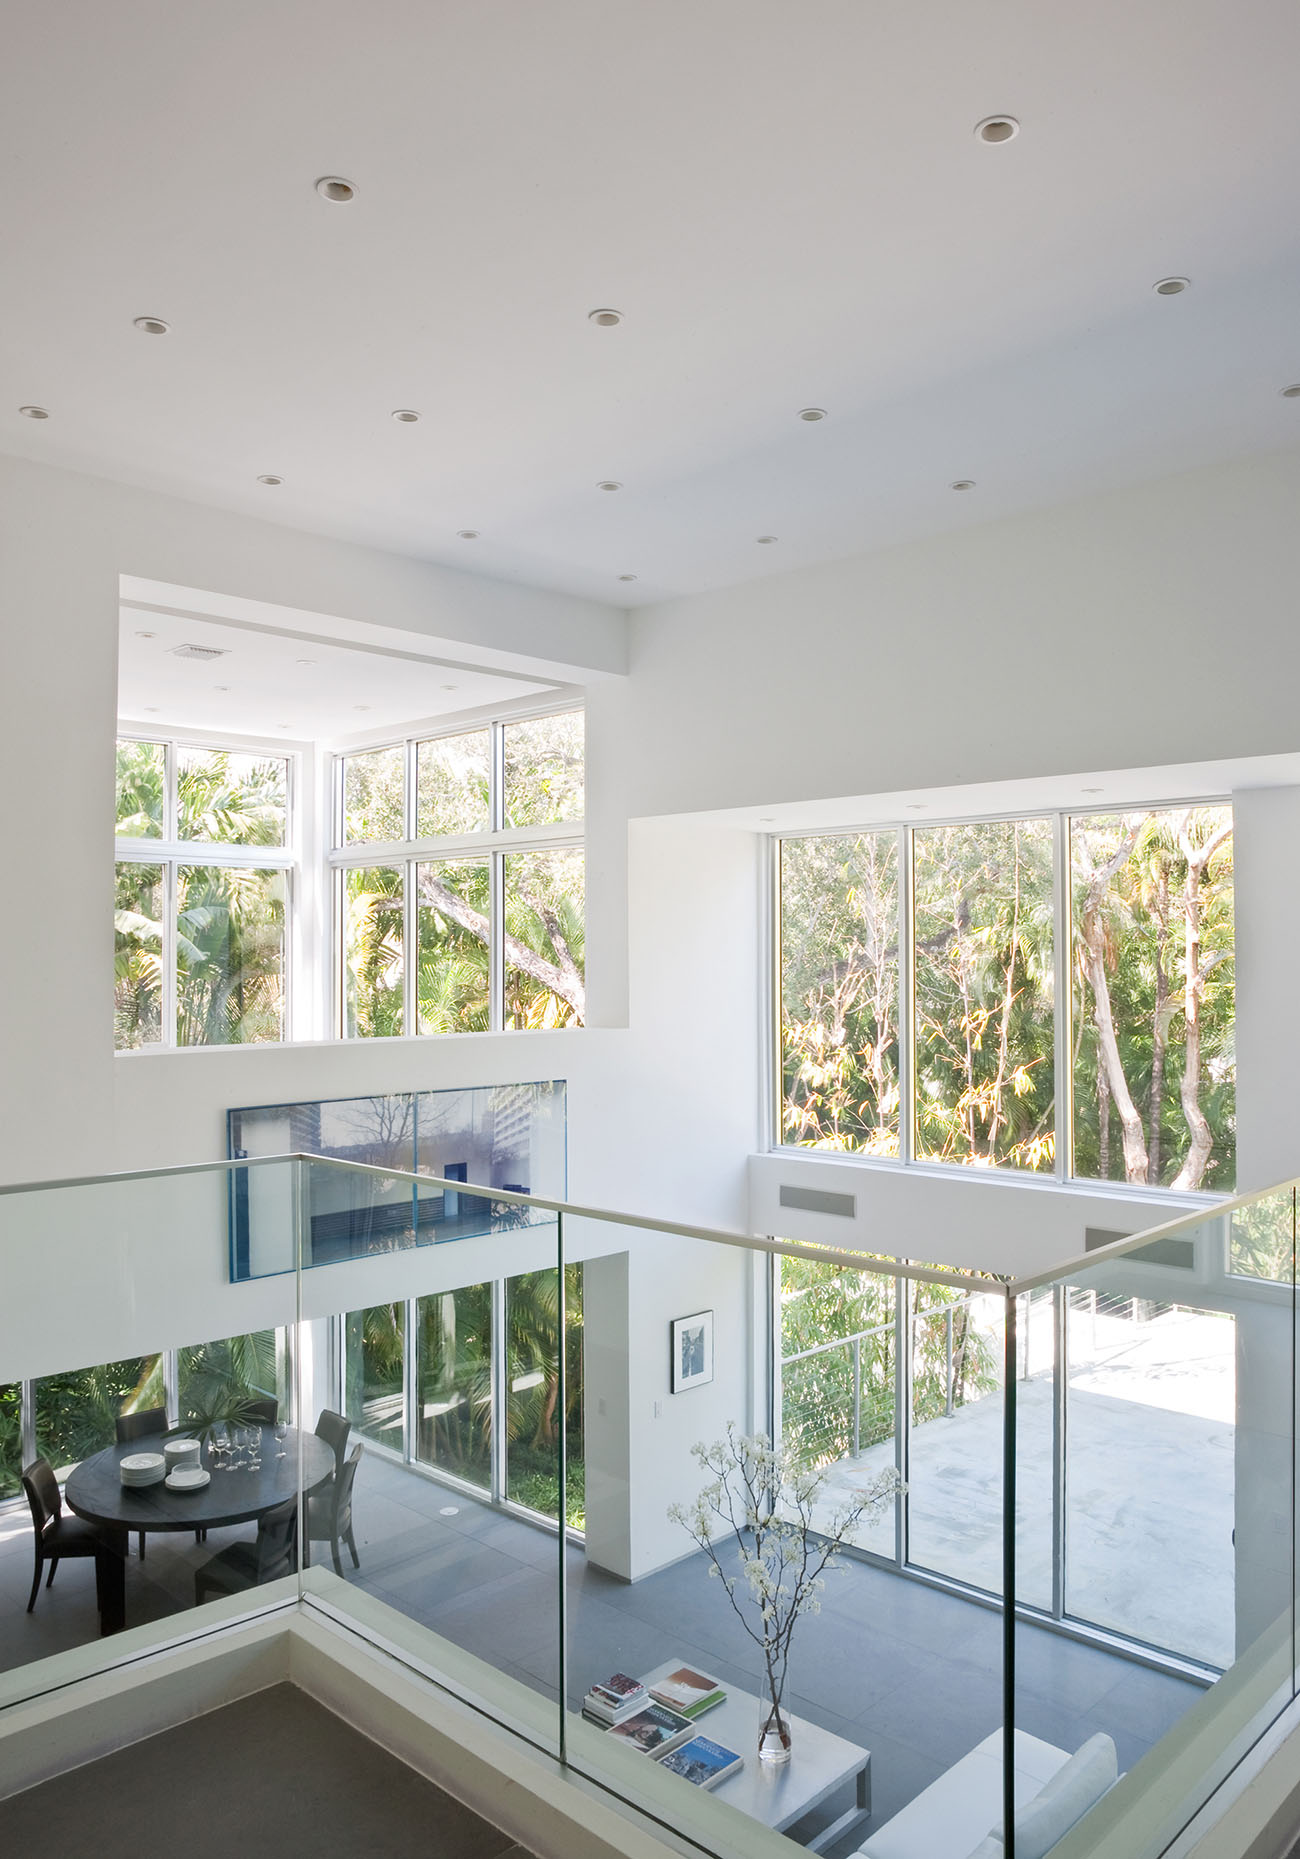 Calm and Minimalistic Spaces of Utopia Residence Coconut Grove by [STRANG] Architecture-08